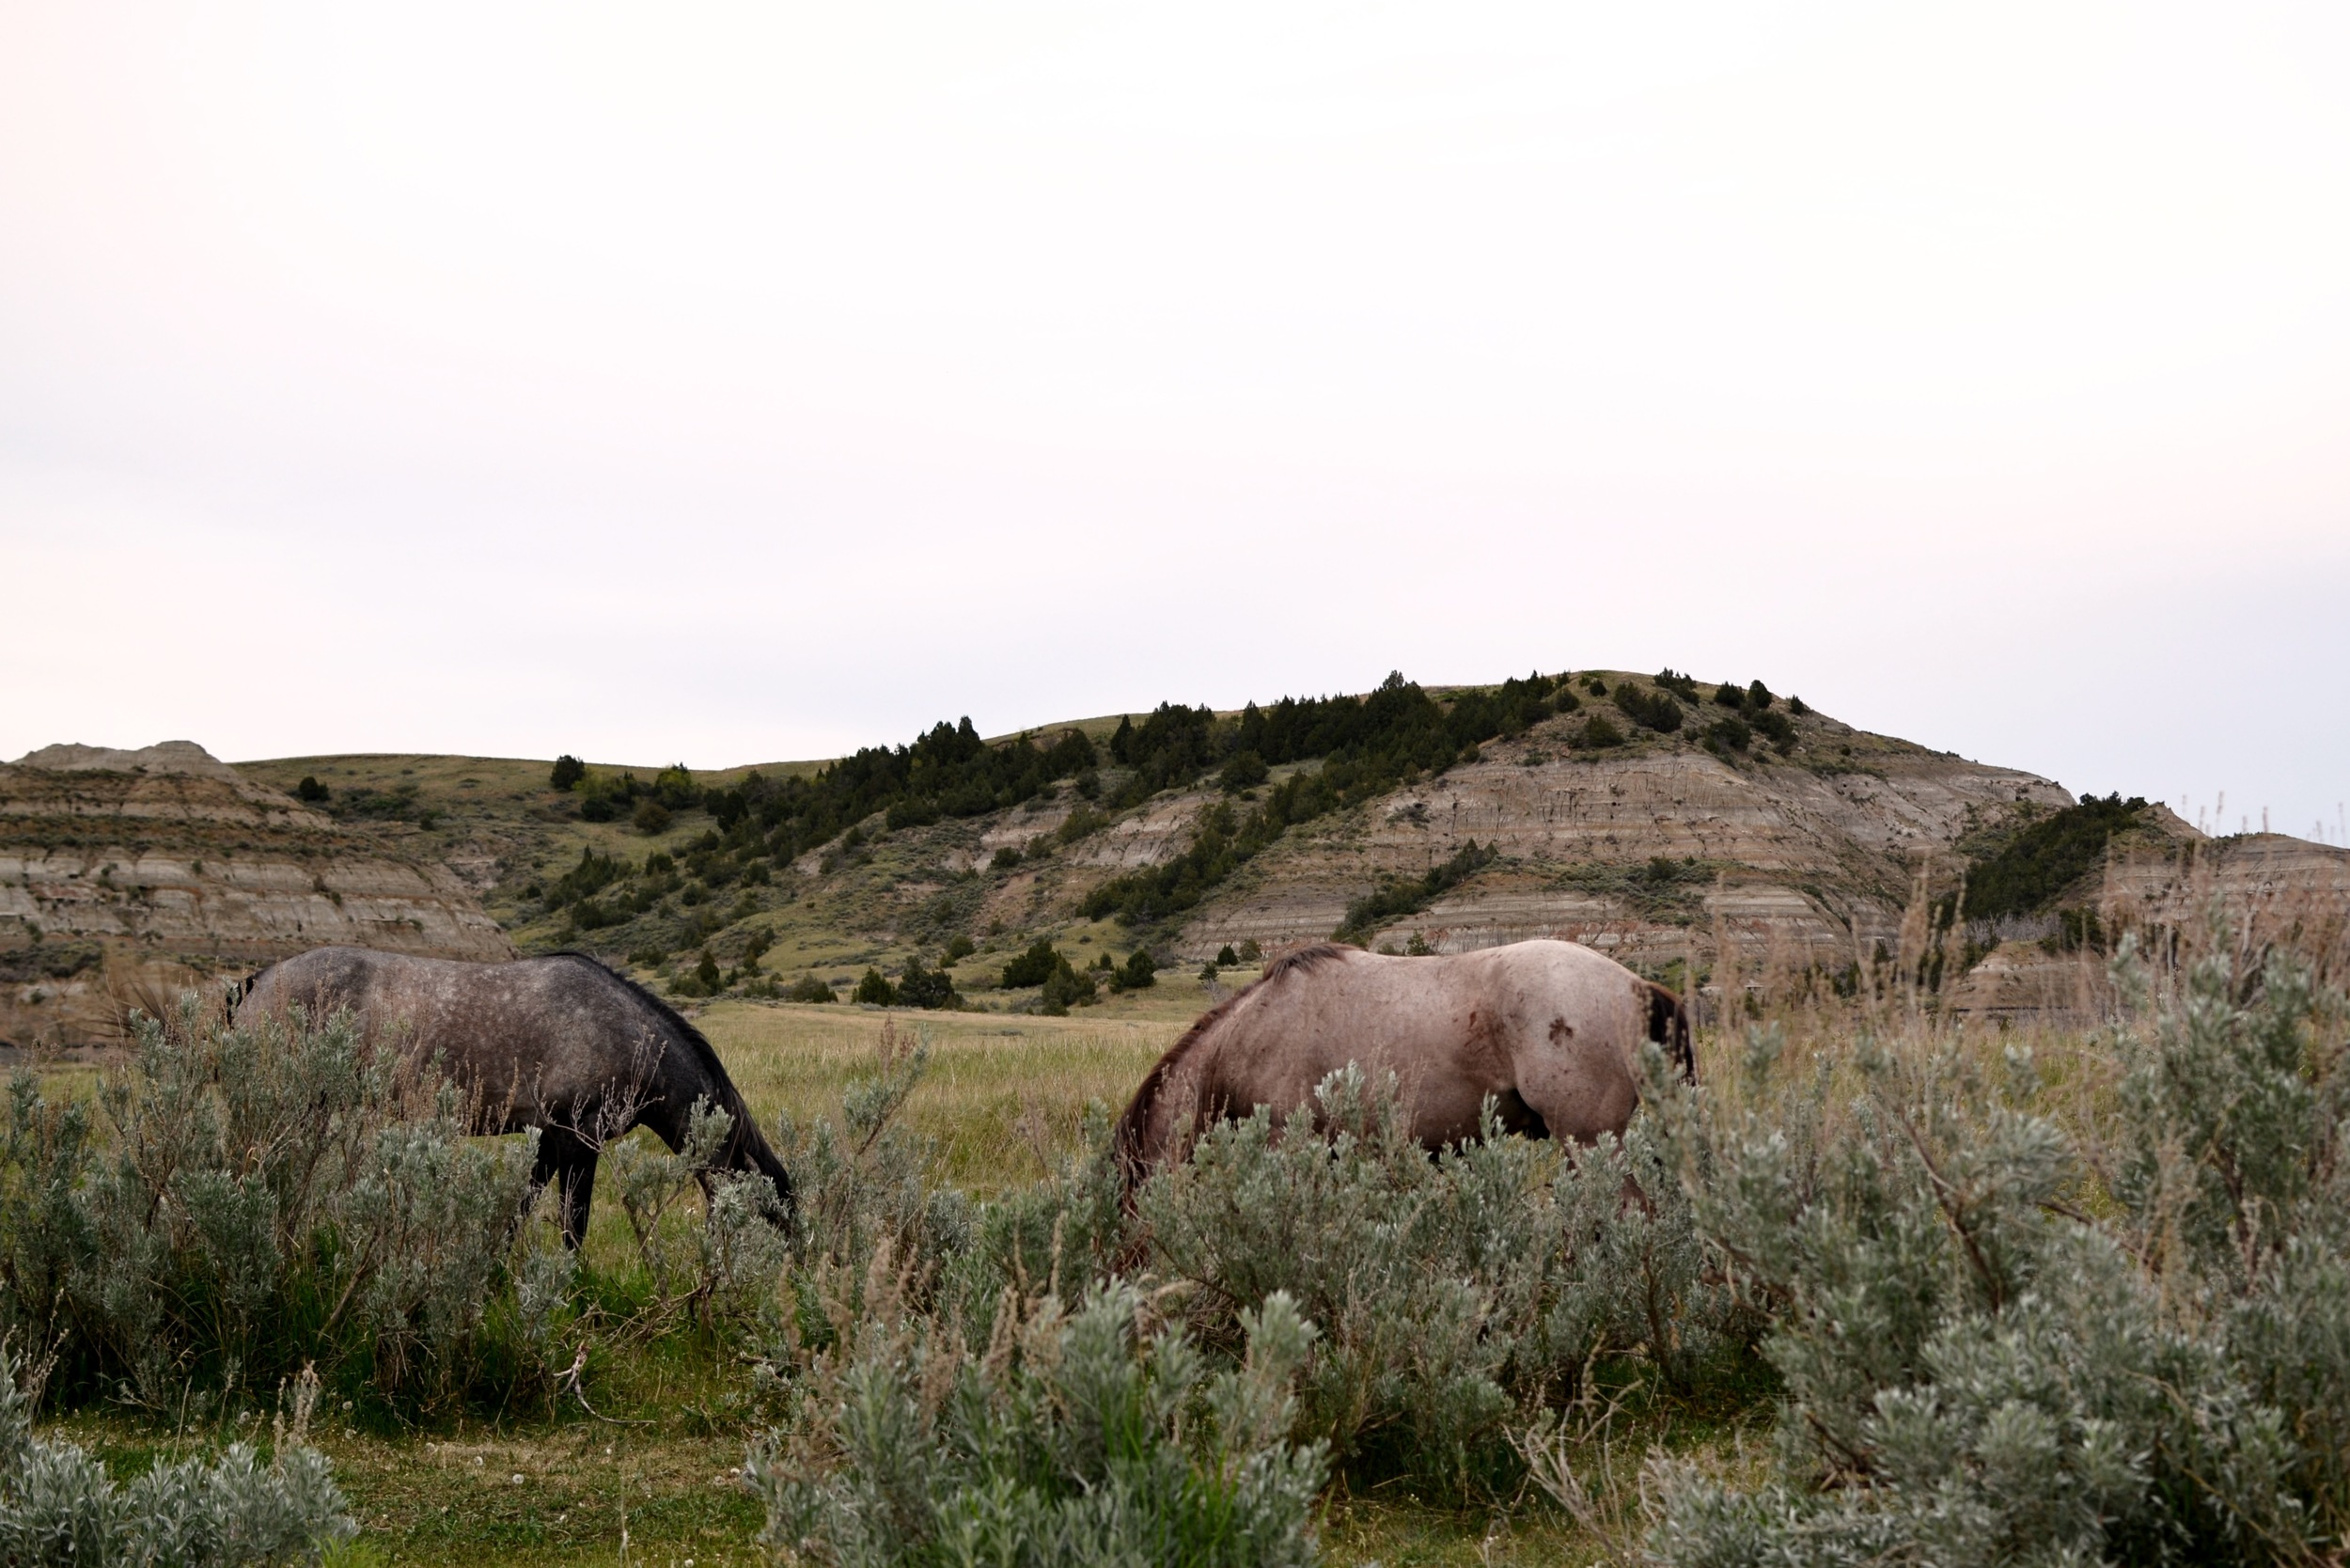 Road Trip: Theodore Roosevelt National Park